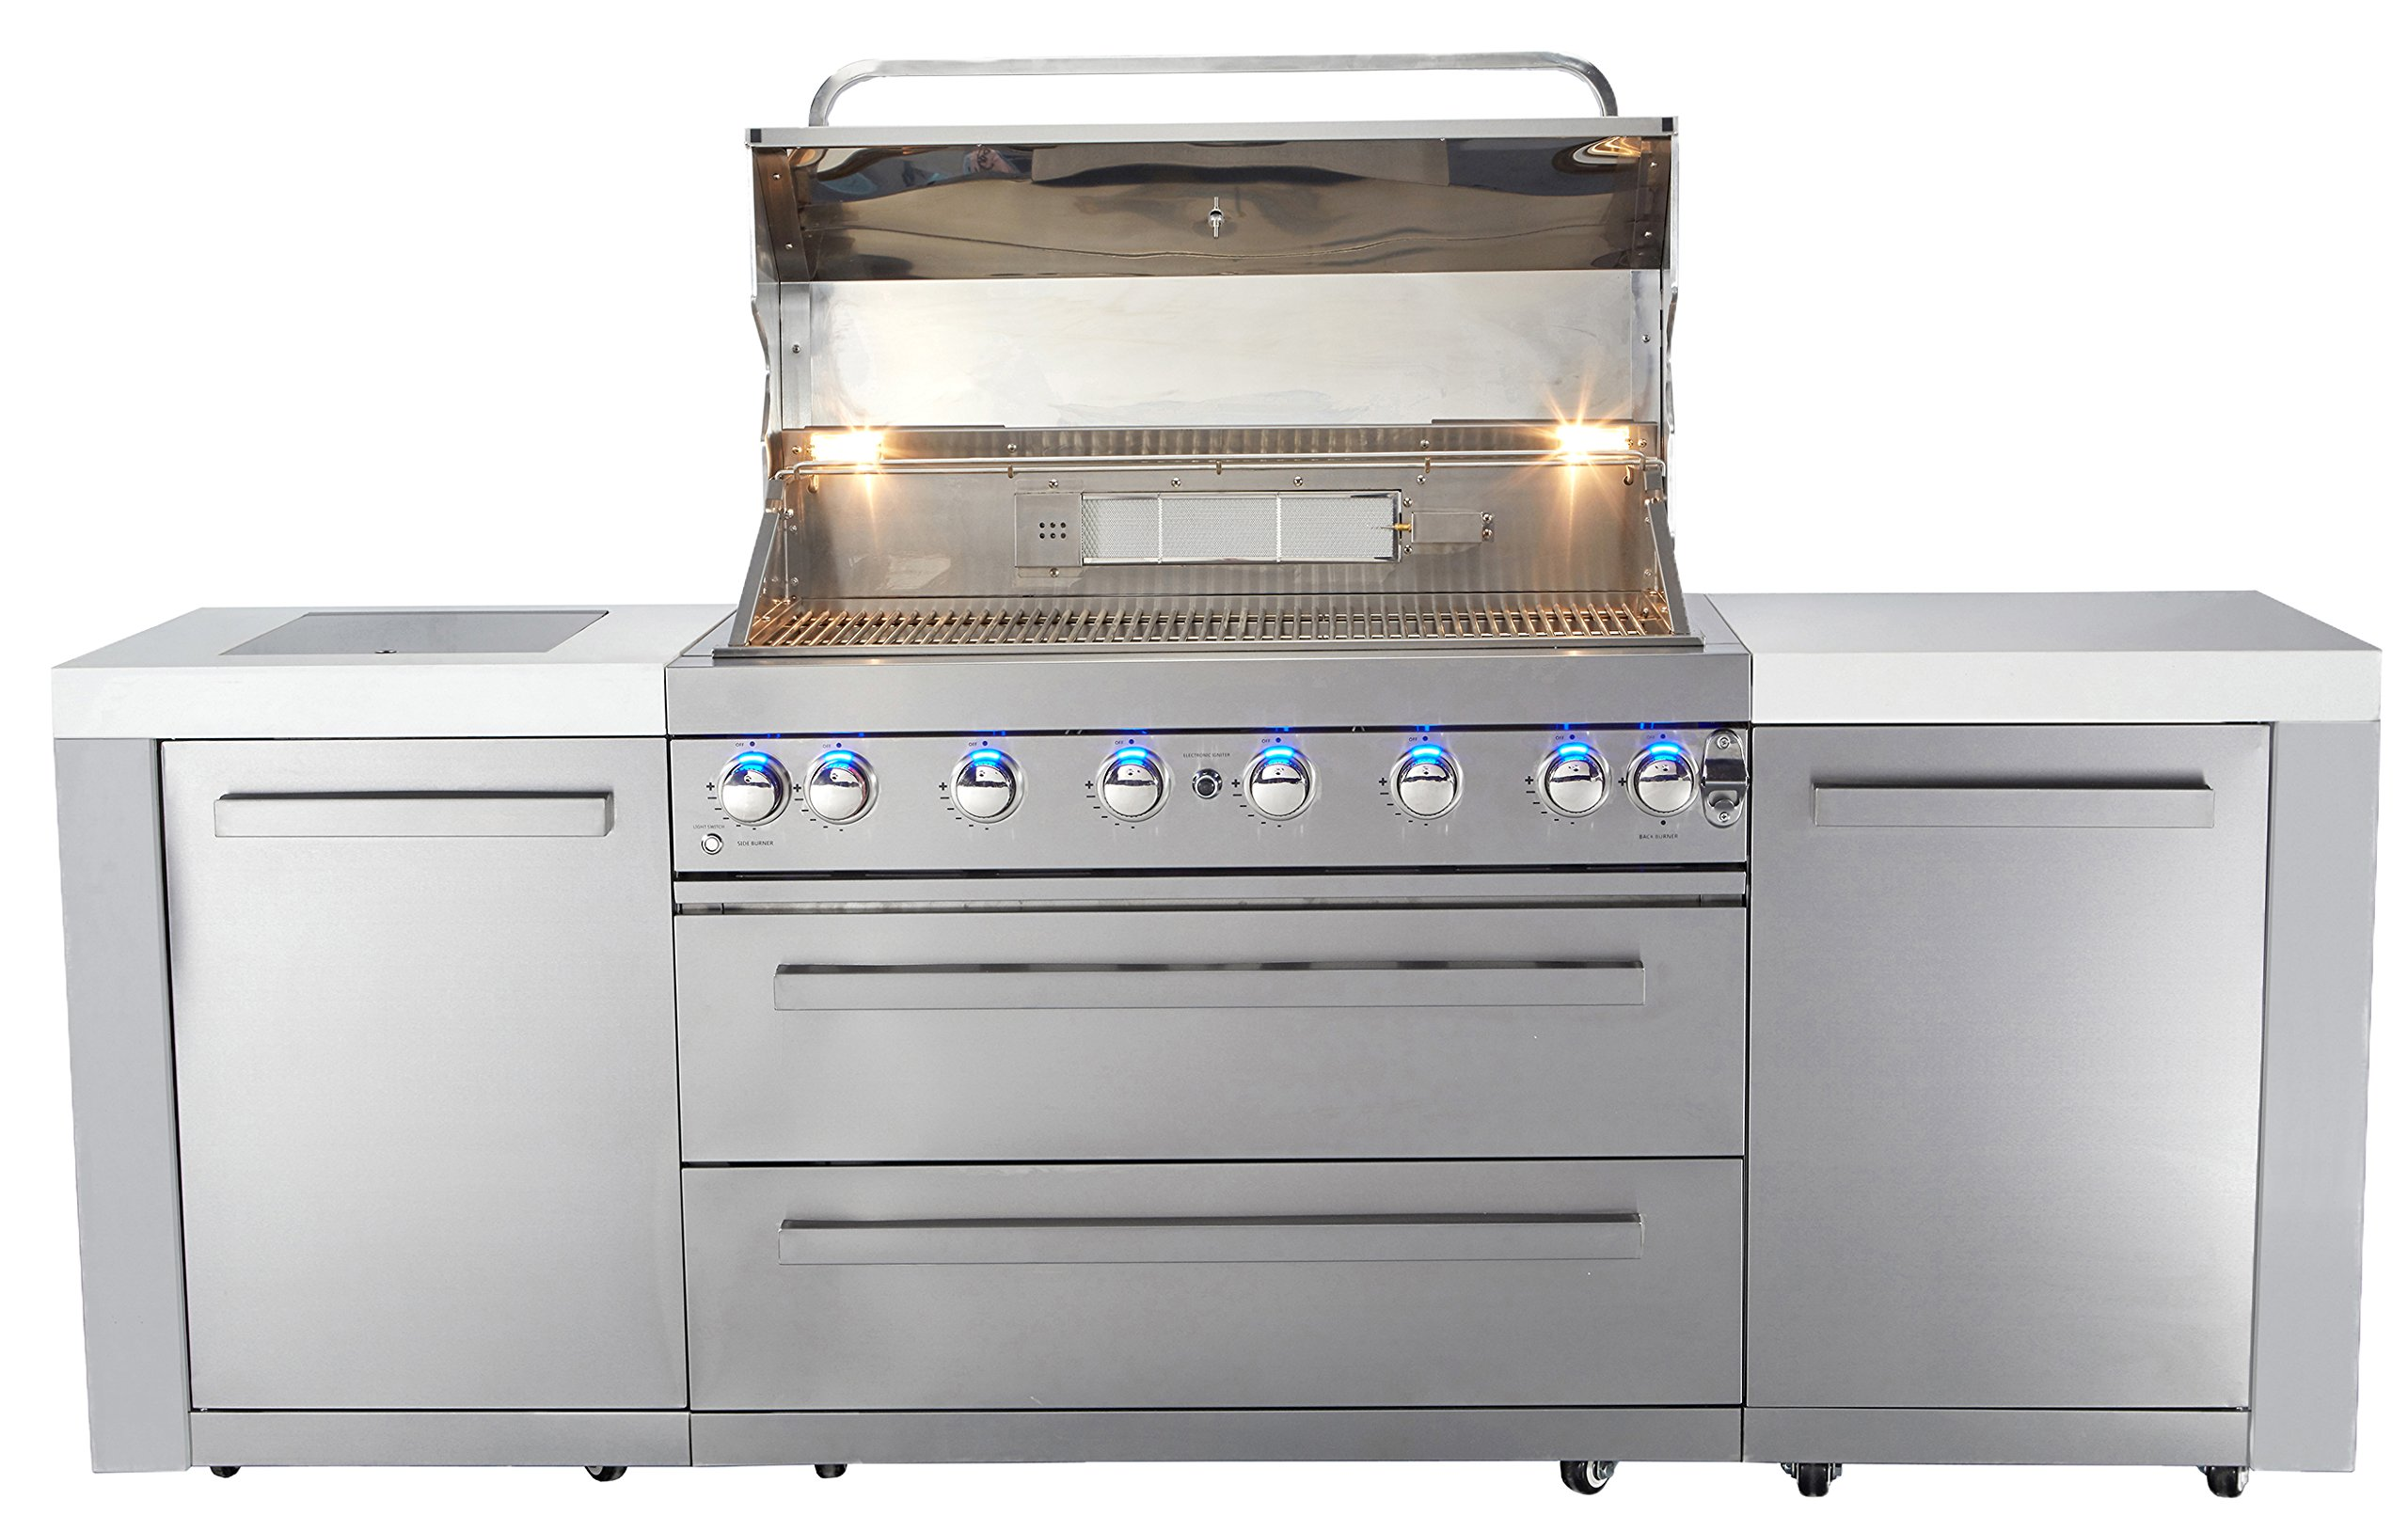 Mont Alpi MAI805 44'' Outdoor Barbeque Island, 47.00 x 20.00 x 93.00 inches, Stainless Steel by Mont Alpi (Image #3)